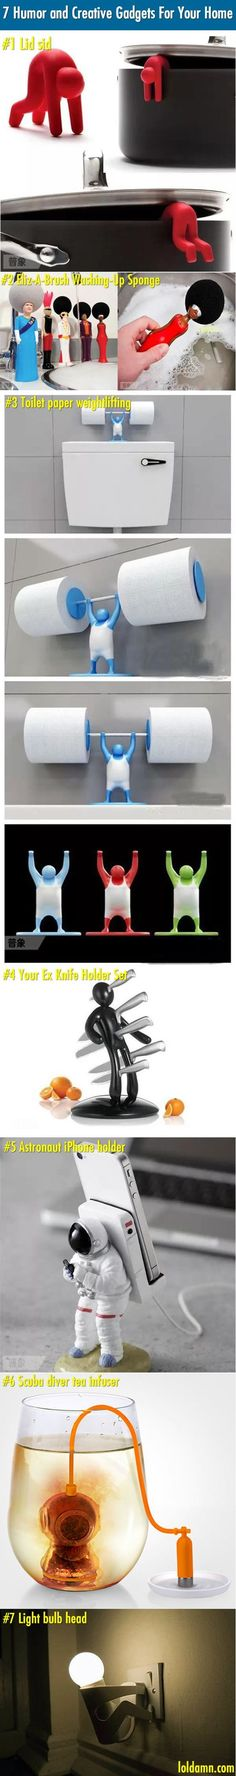 household appliances creative designs, kitchen and bathroom gadgets funny